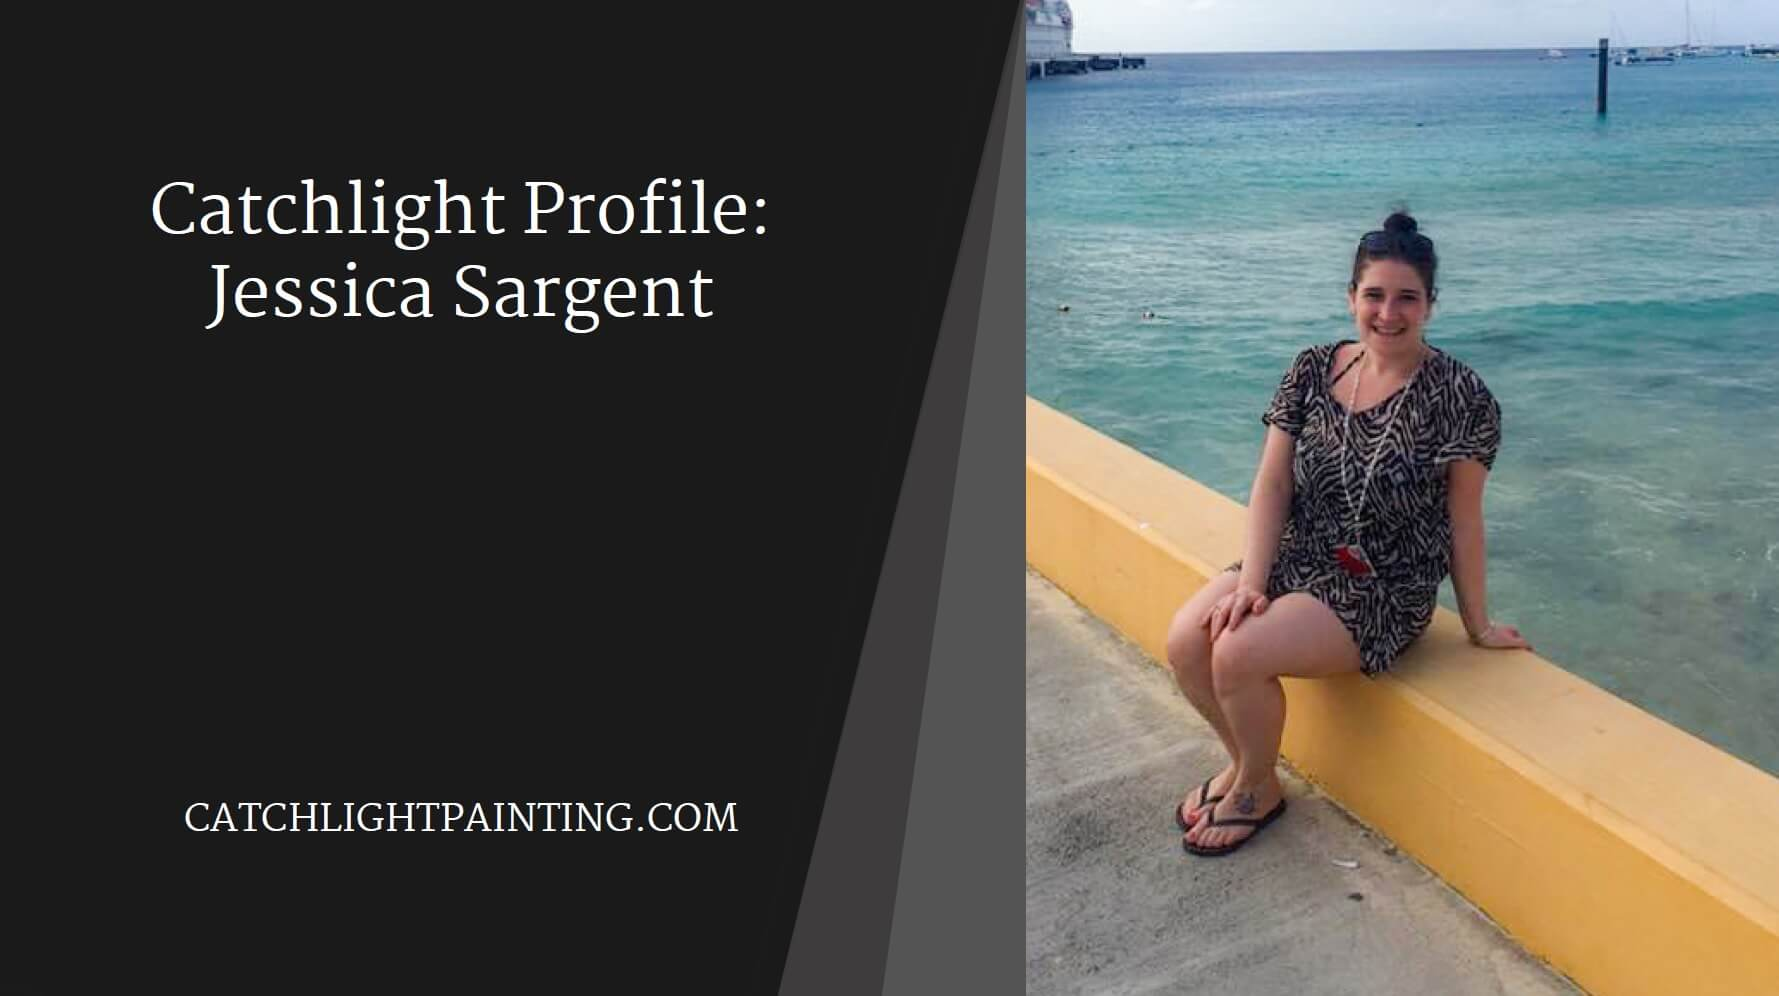 Catchlight Profile: Jessica Sargent